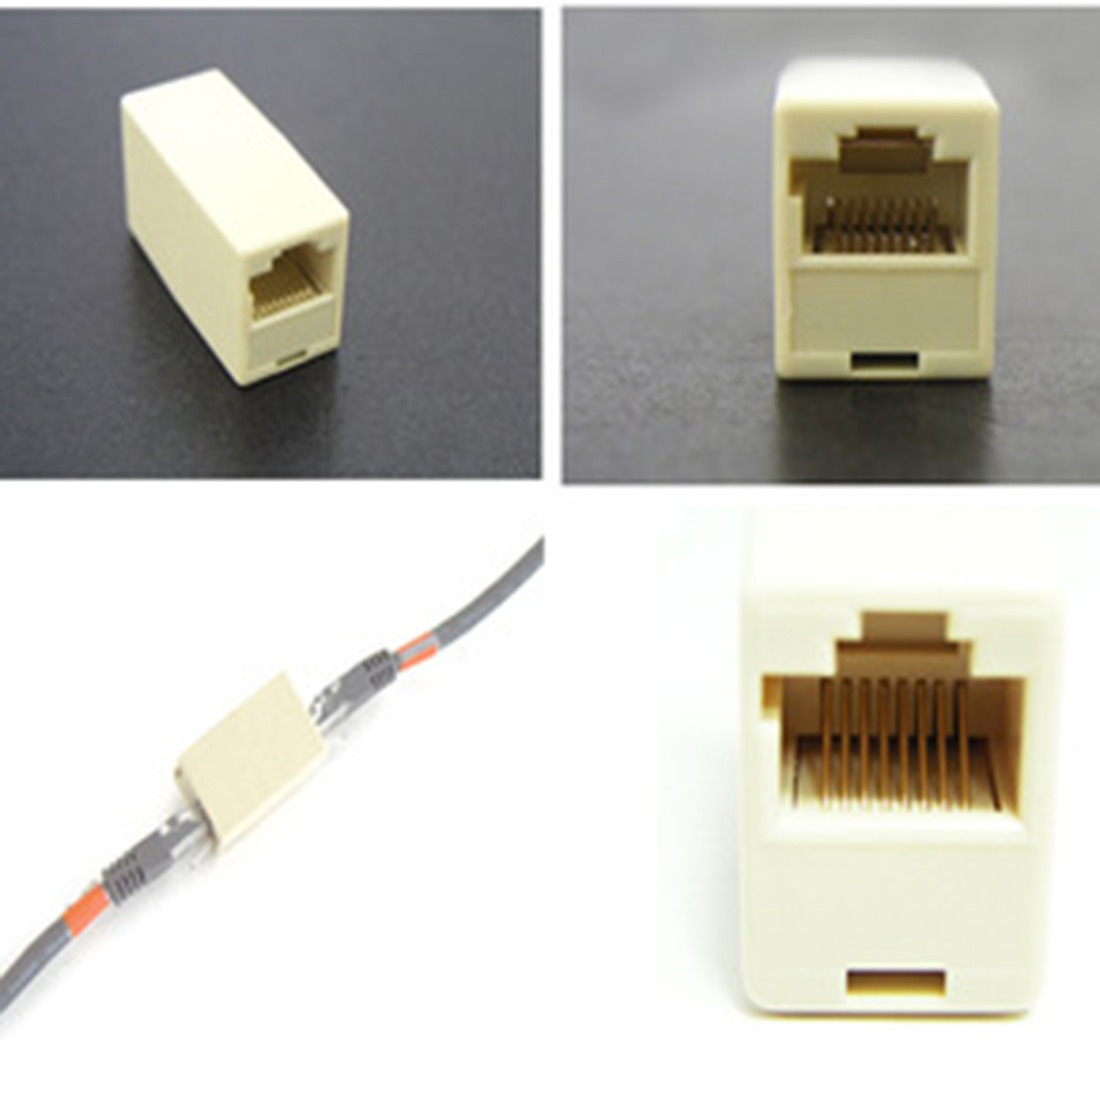 Marsnaska Cable Joiner RJ45 Adapter Network Ethernet Lan Coupler Connector Extender Plug lan ethernet network rj45 1 male to 3 female connector splitter adapter cable h029